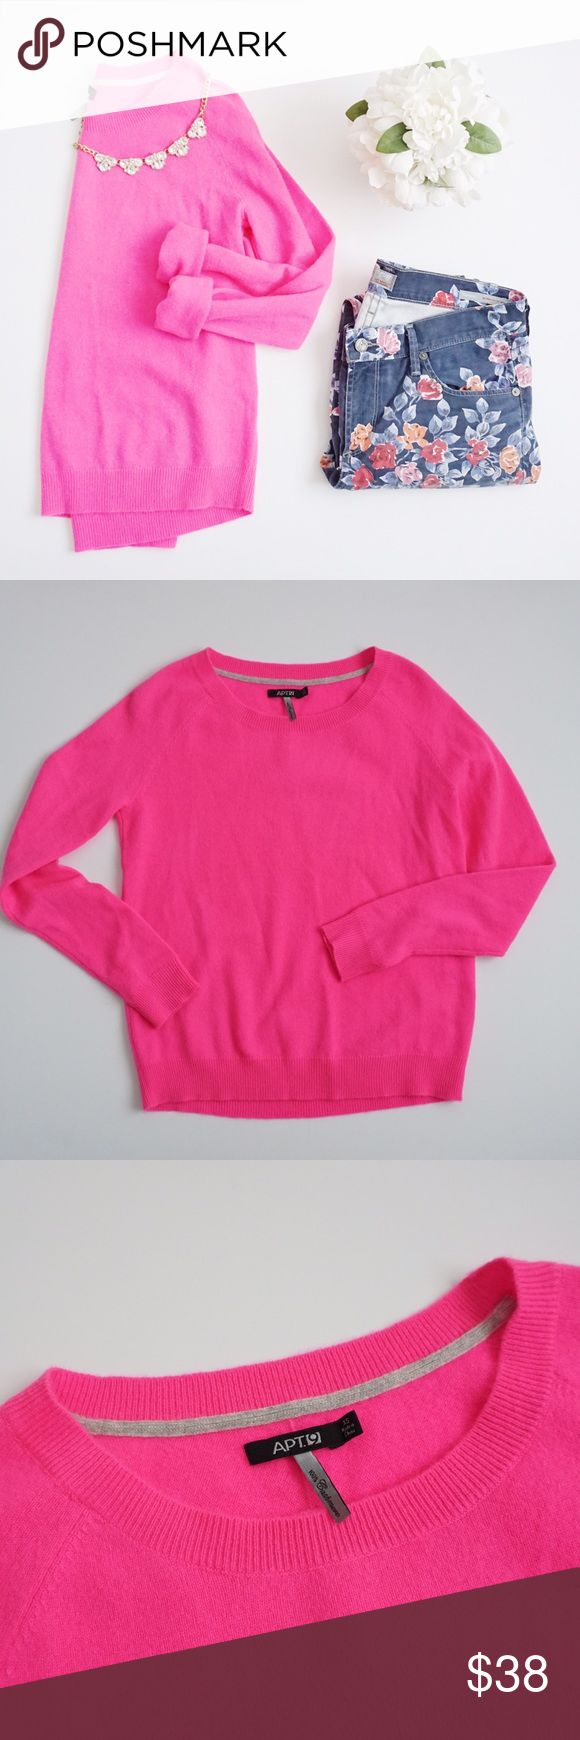 Apt. 9 100% Cashmere Pink Sweater Apt. 9 100% cashmere hot pink sweater size XS. 23 inches long, 17 inch bust. No stains or holes. Apt. 9 Sweaters Crew & Scoop Necks